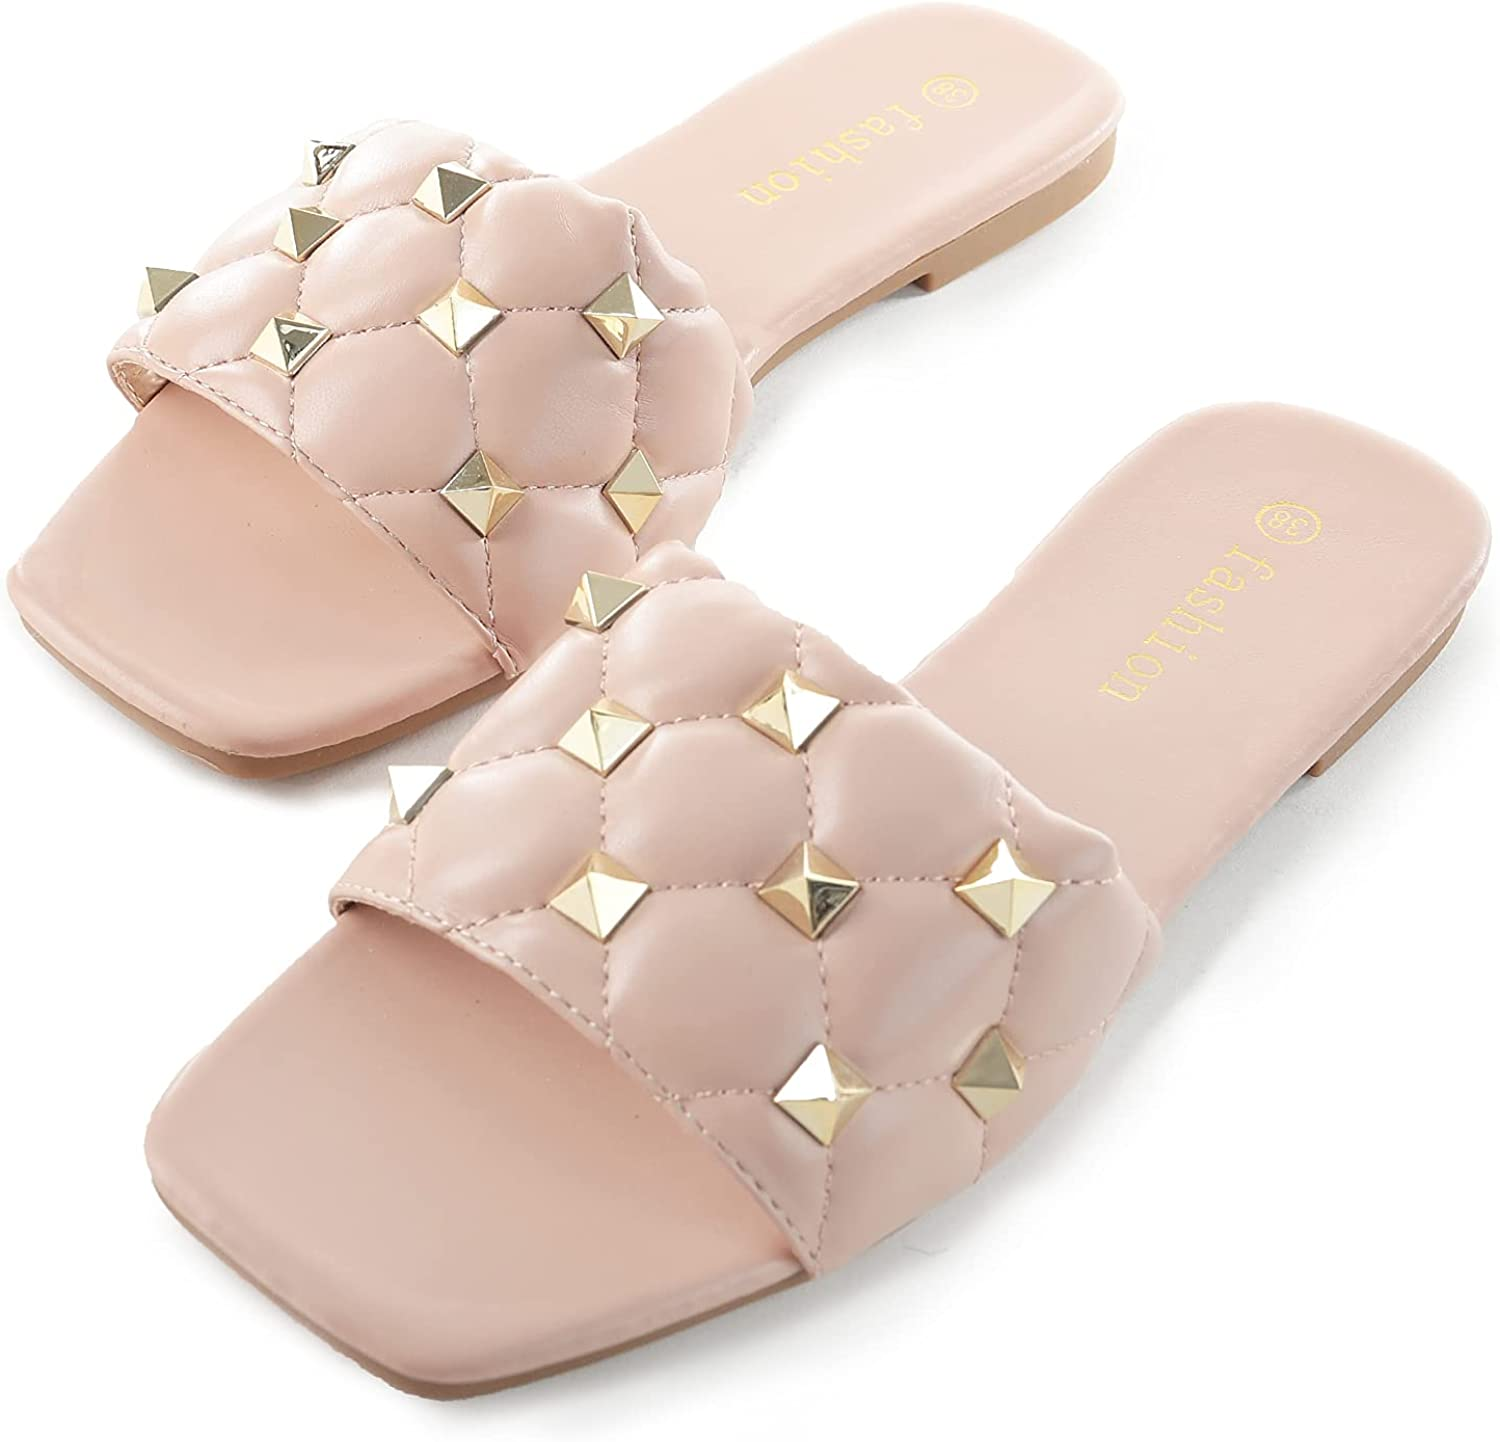 TANOSII Faux Leather Slippers Flat Slides Open Toe Sandals For Women